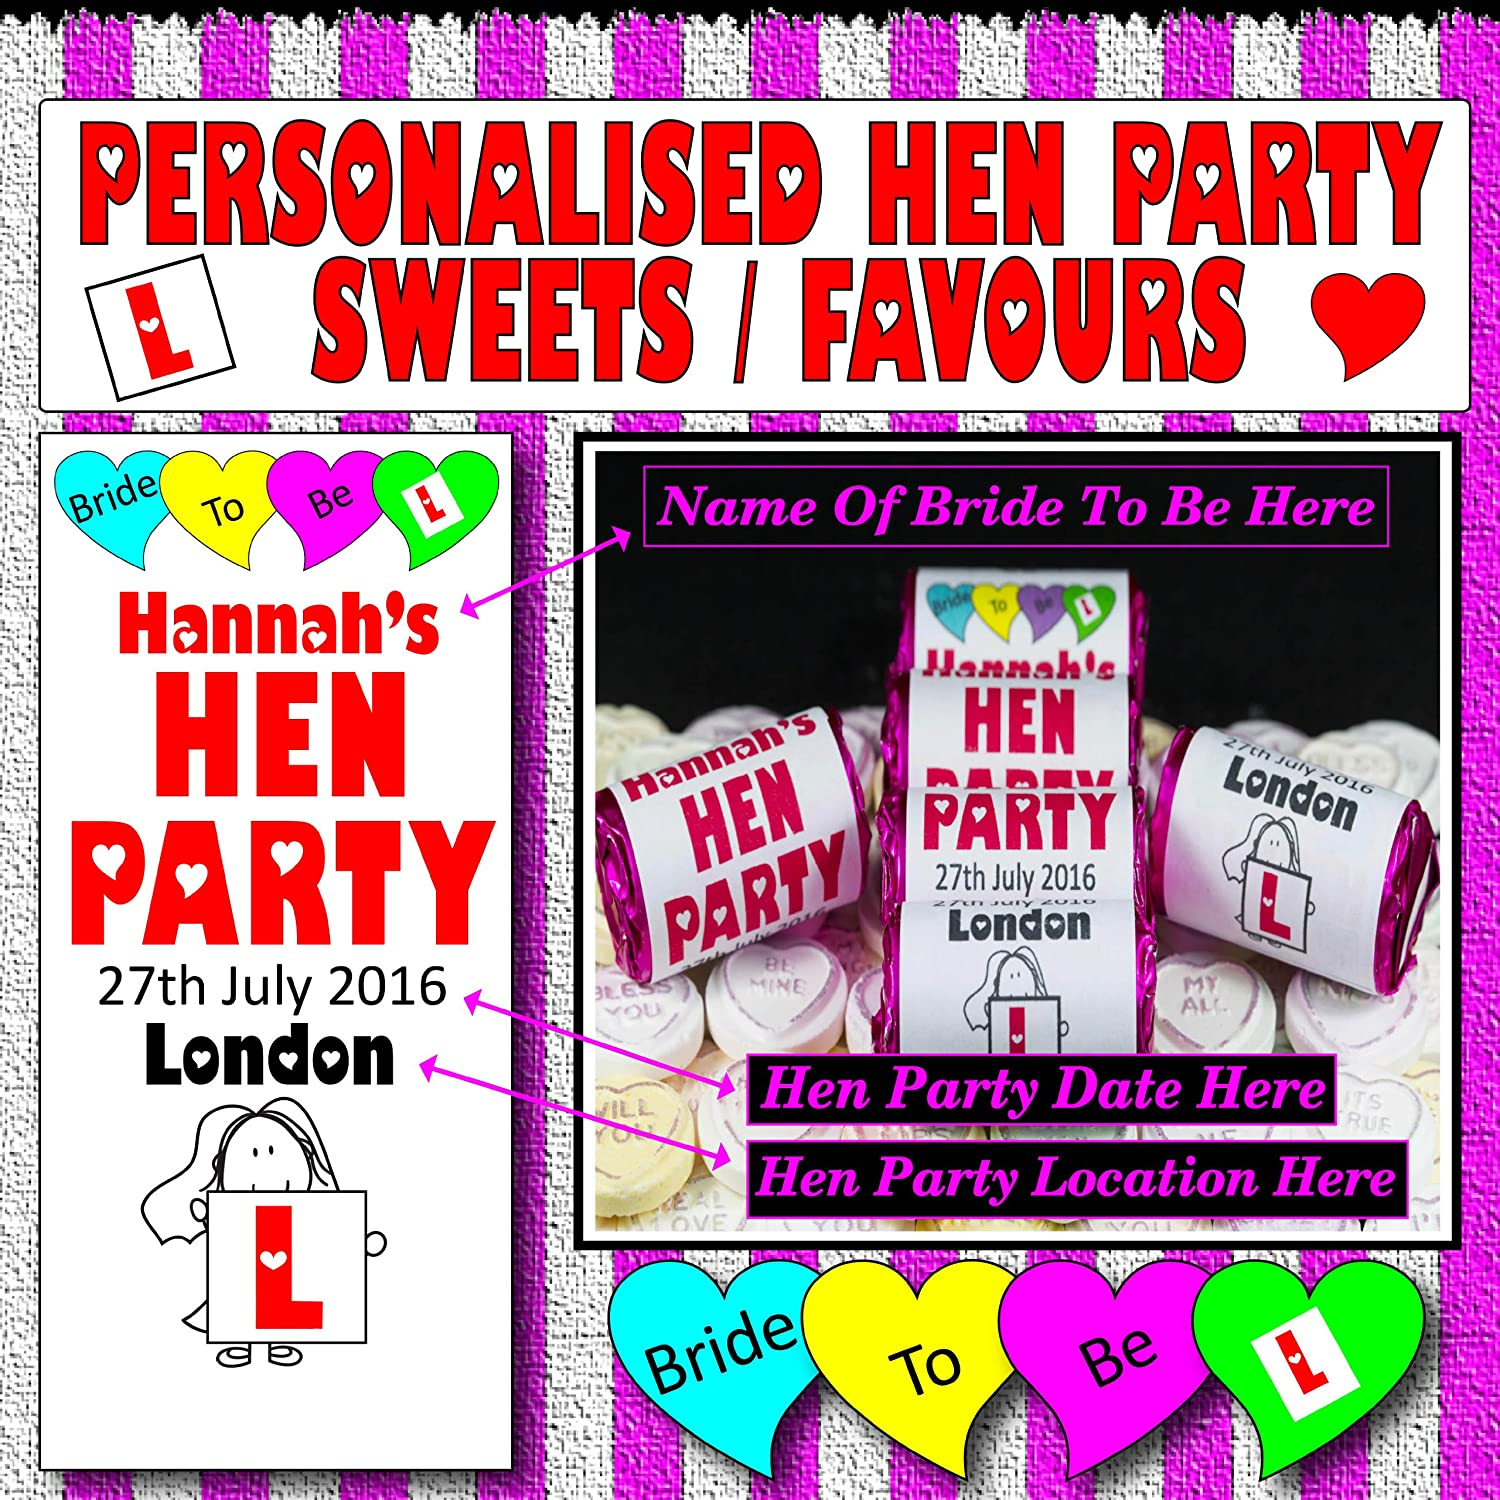 Hen Party Hen Night Personalised x 25 Mini Love Heart Packs Personalised Favours / Sweets Each Pack/Roll Contains Seven Love Heart Sweets FK